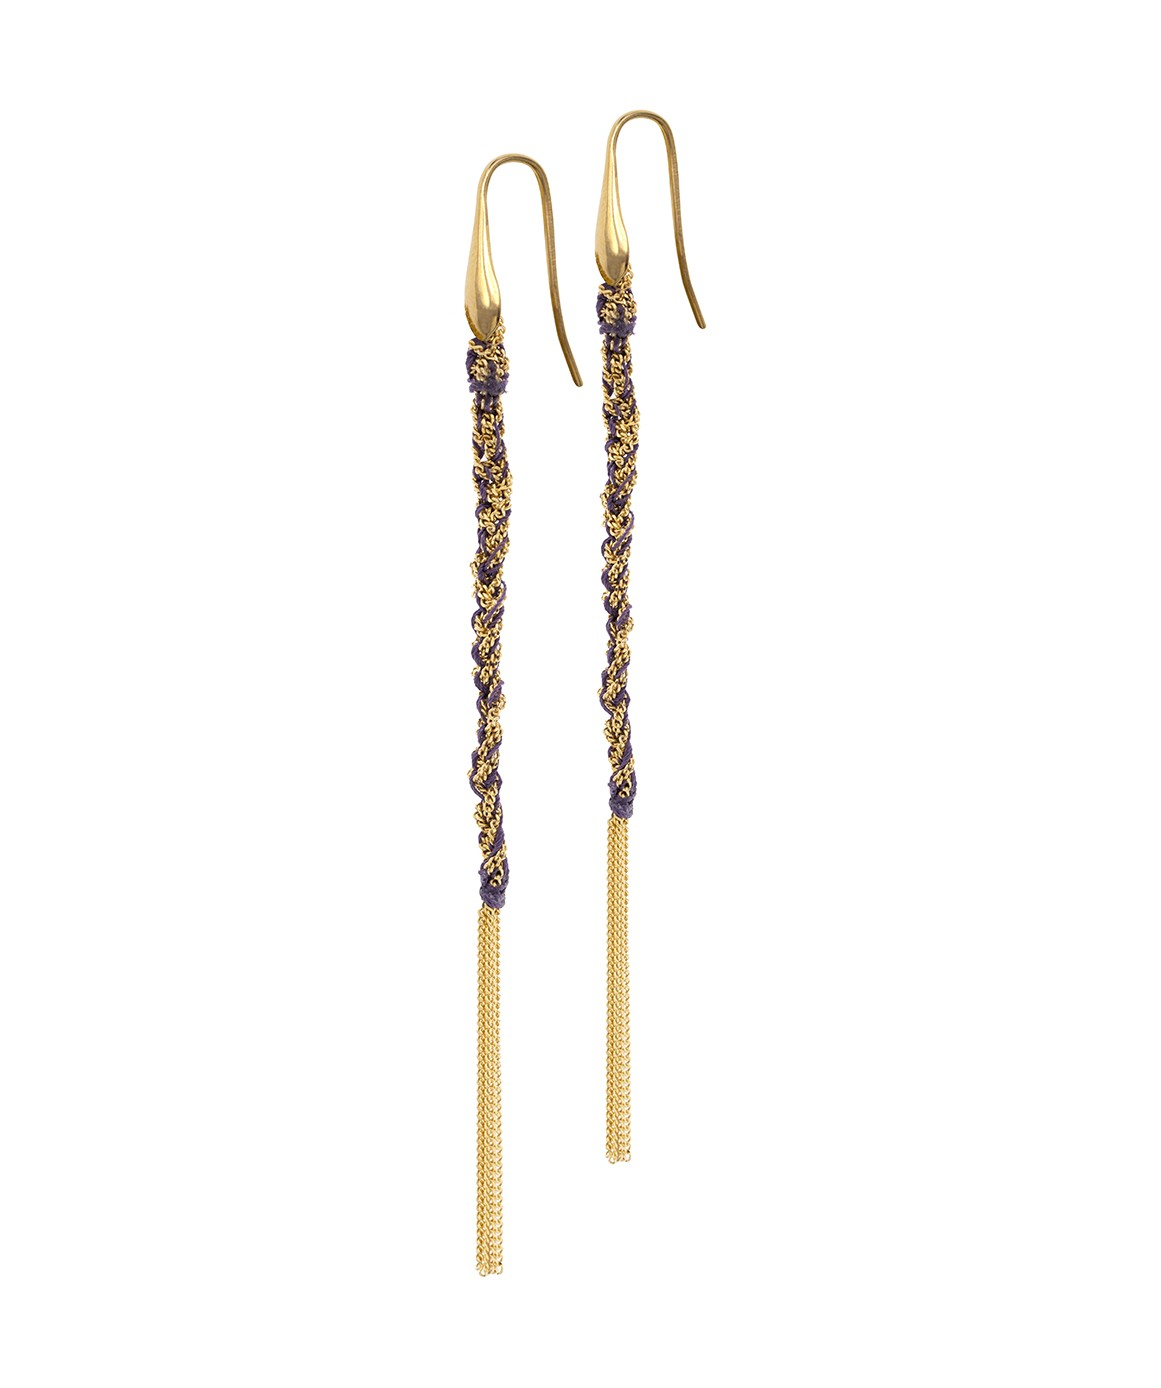 TWIST Earrings in Sterling Silver 18Kt. Yellow gold plated. Fabric: Purple